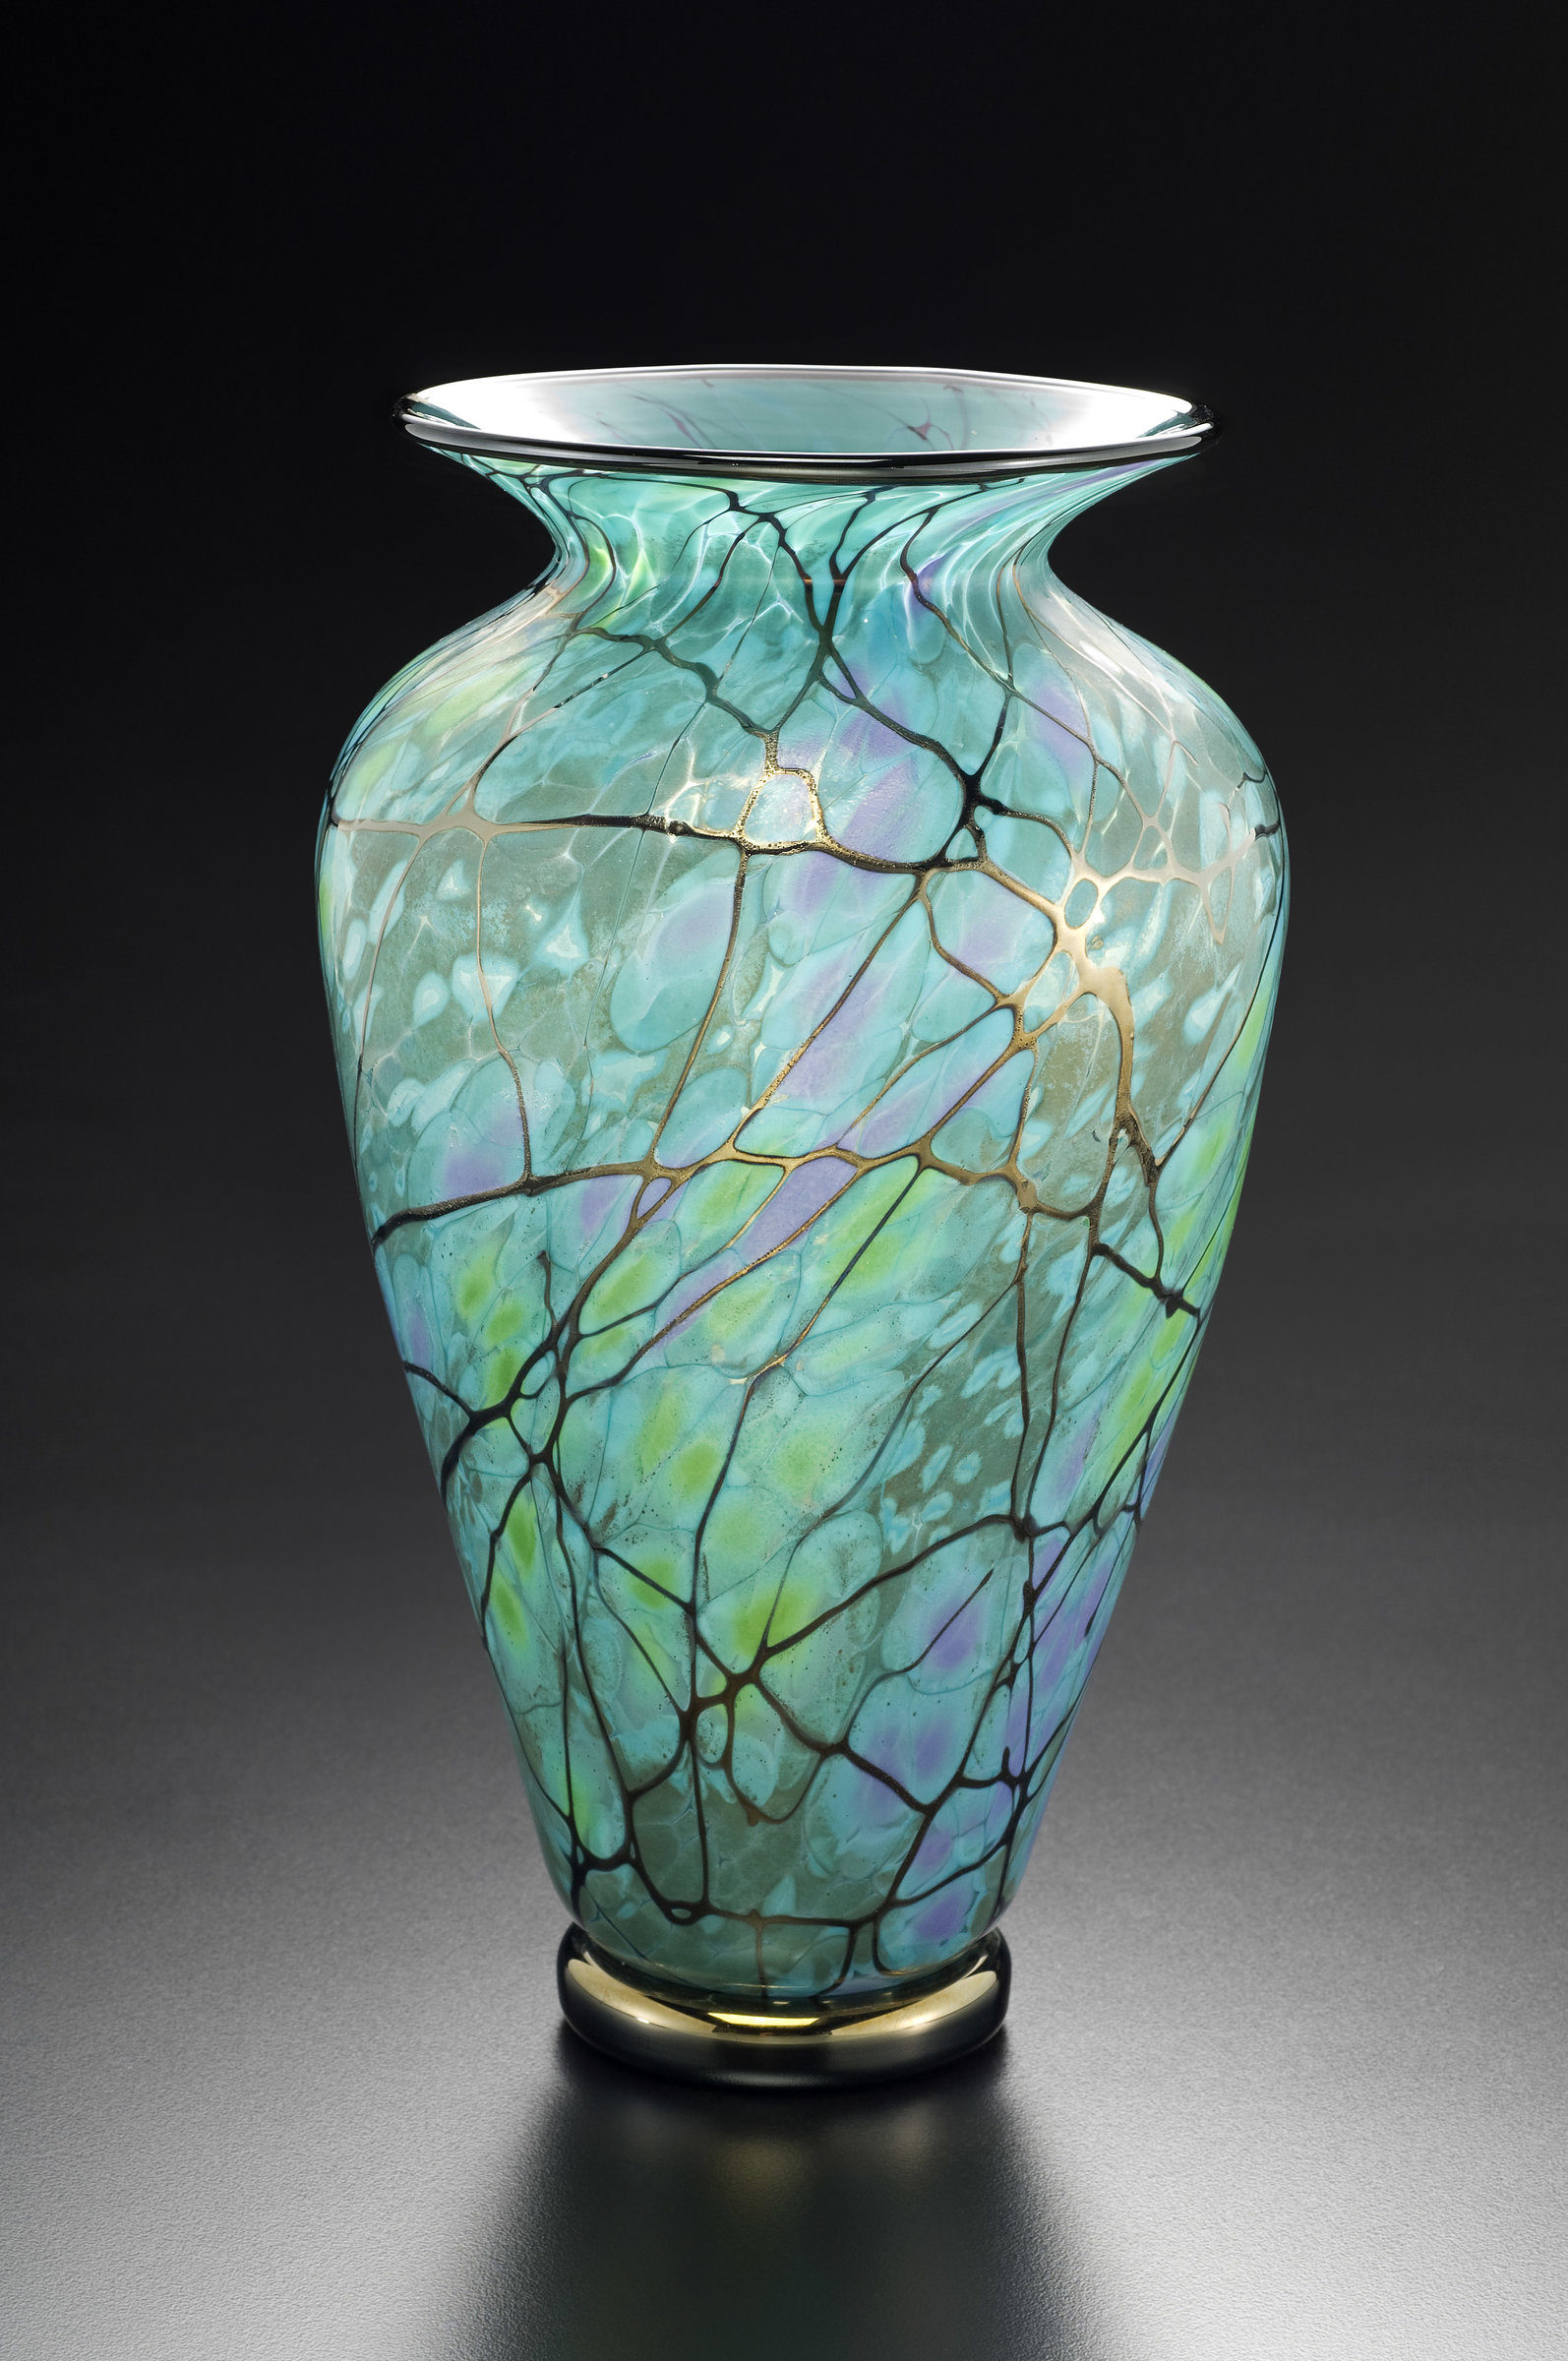 serenity vase by david lindsay art glass vase artful home. Black Bedroom Furniture Sets. Home Design Ideas